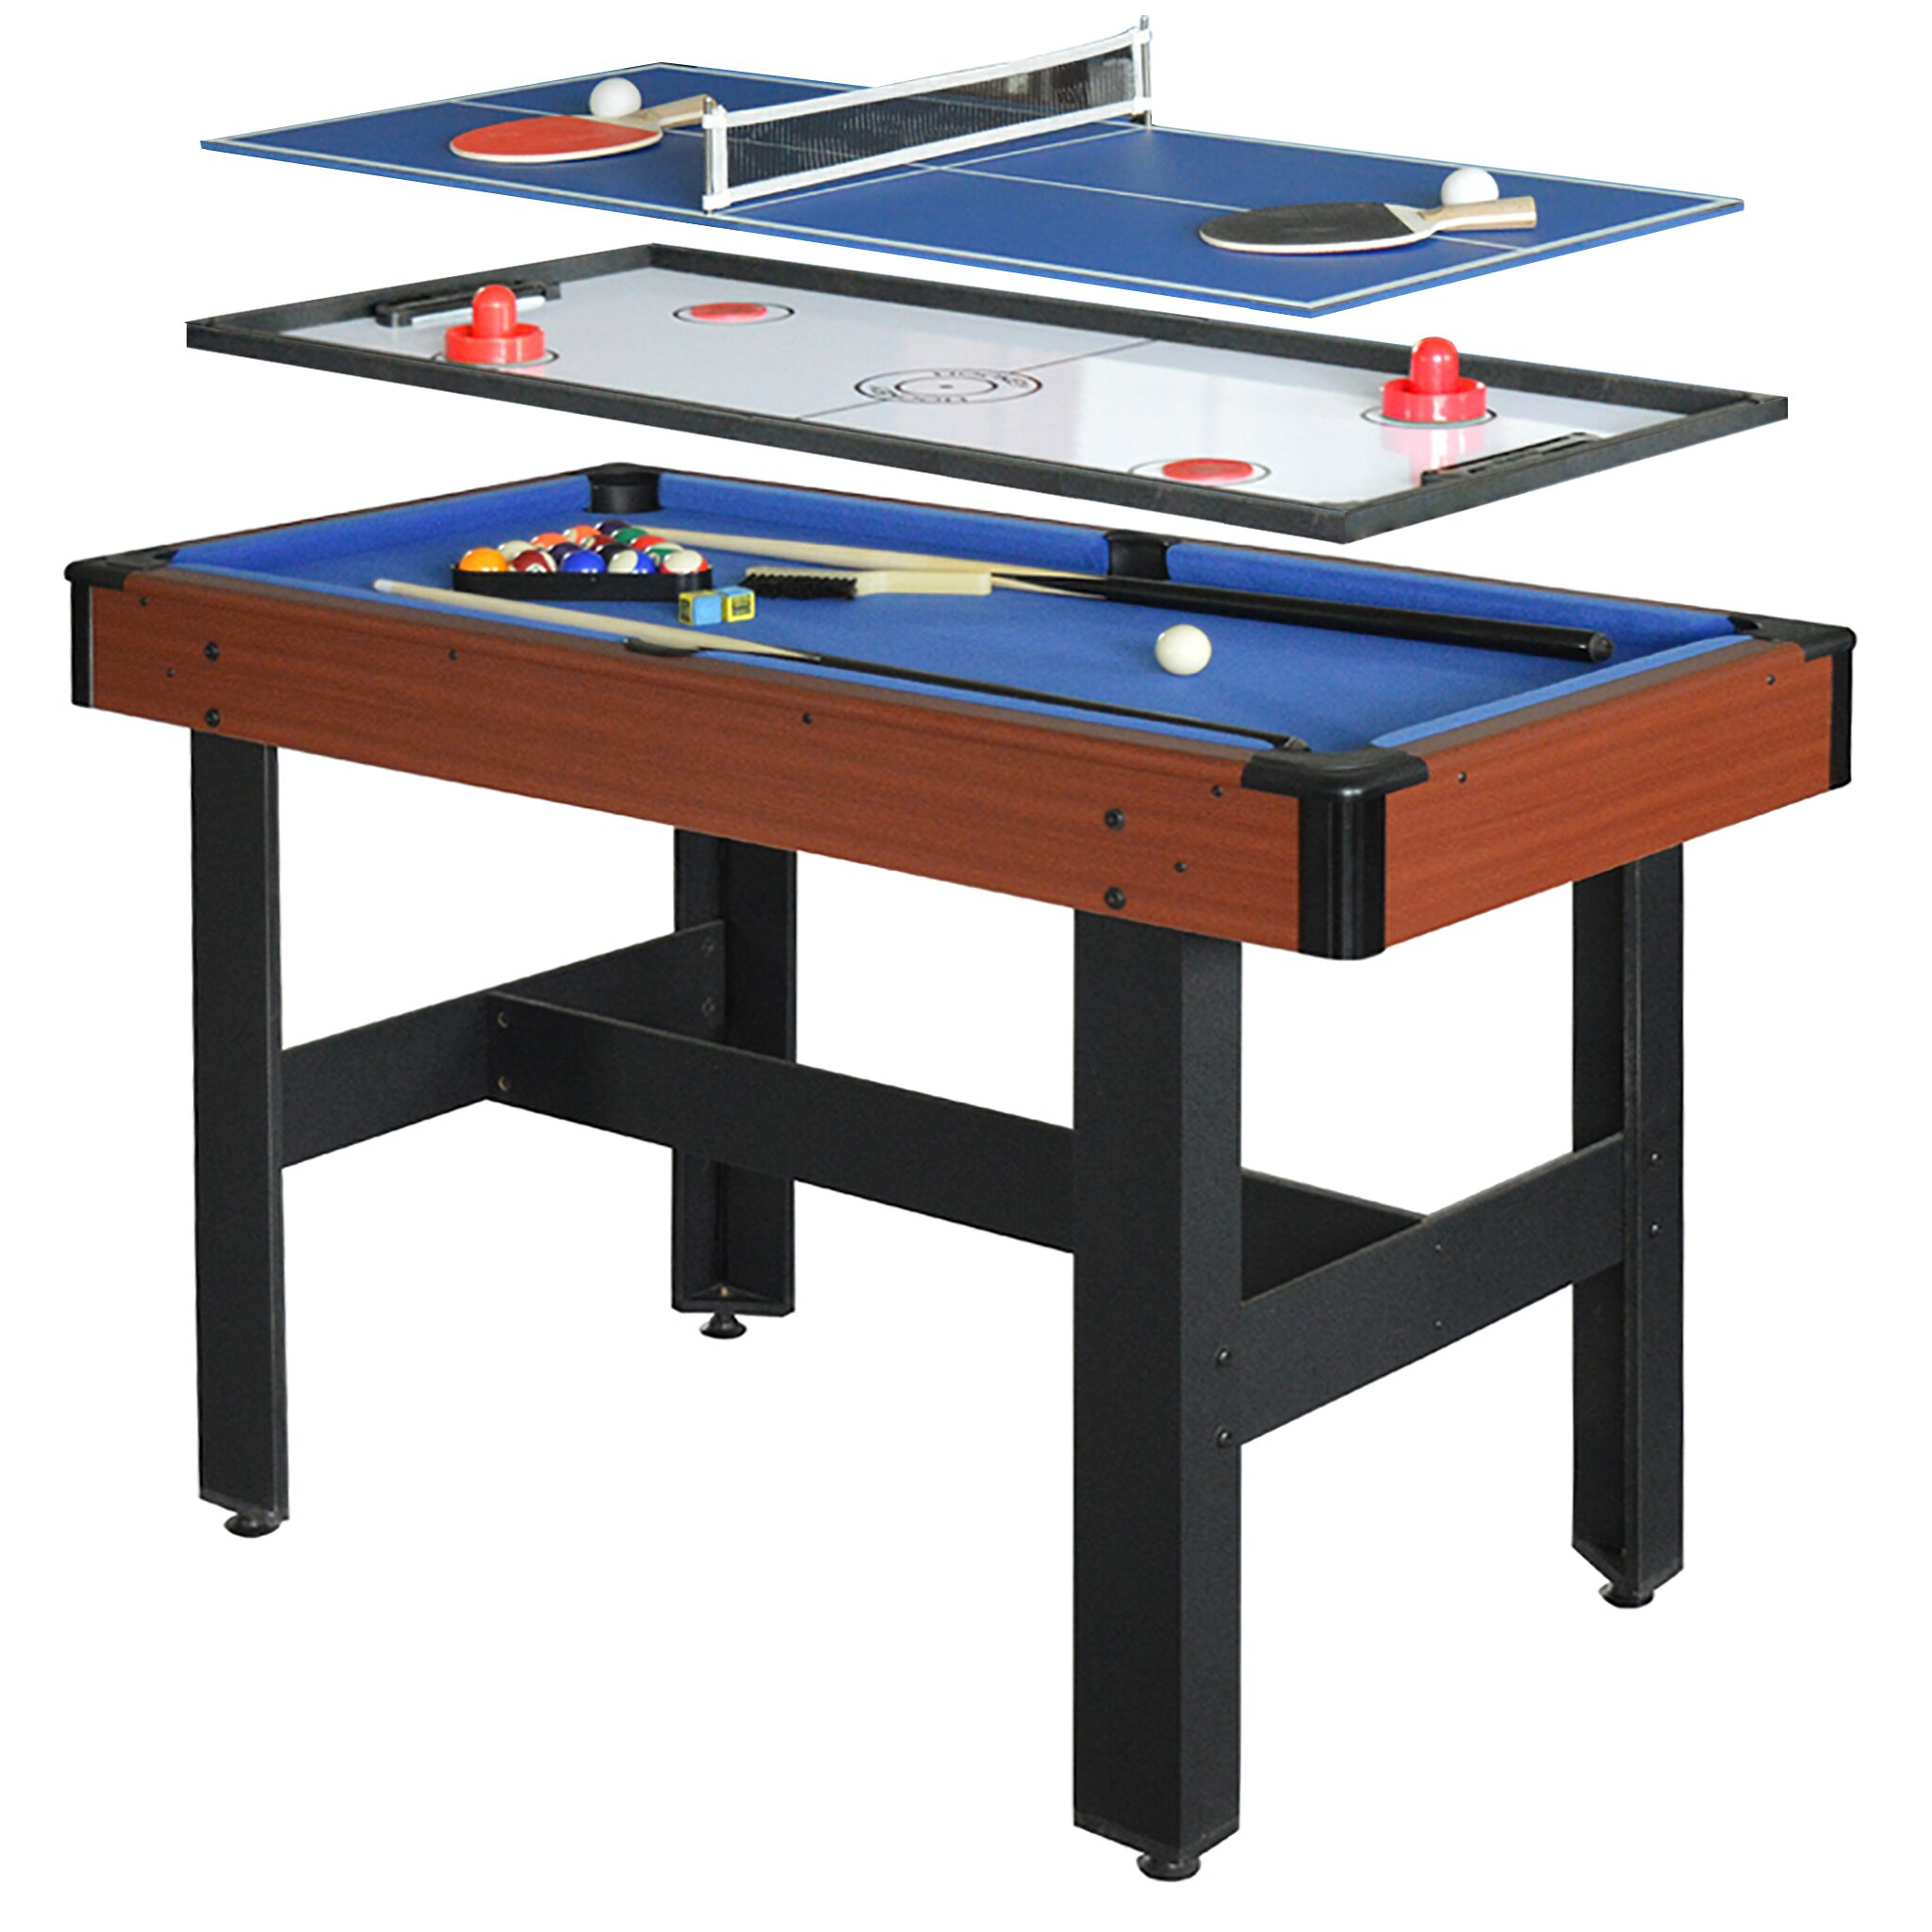 Hathaway games triad 3 in 1 multi game table reviews for 10 games in 1 table